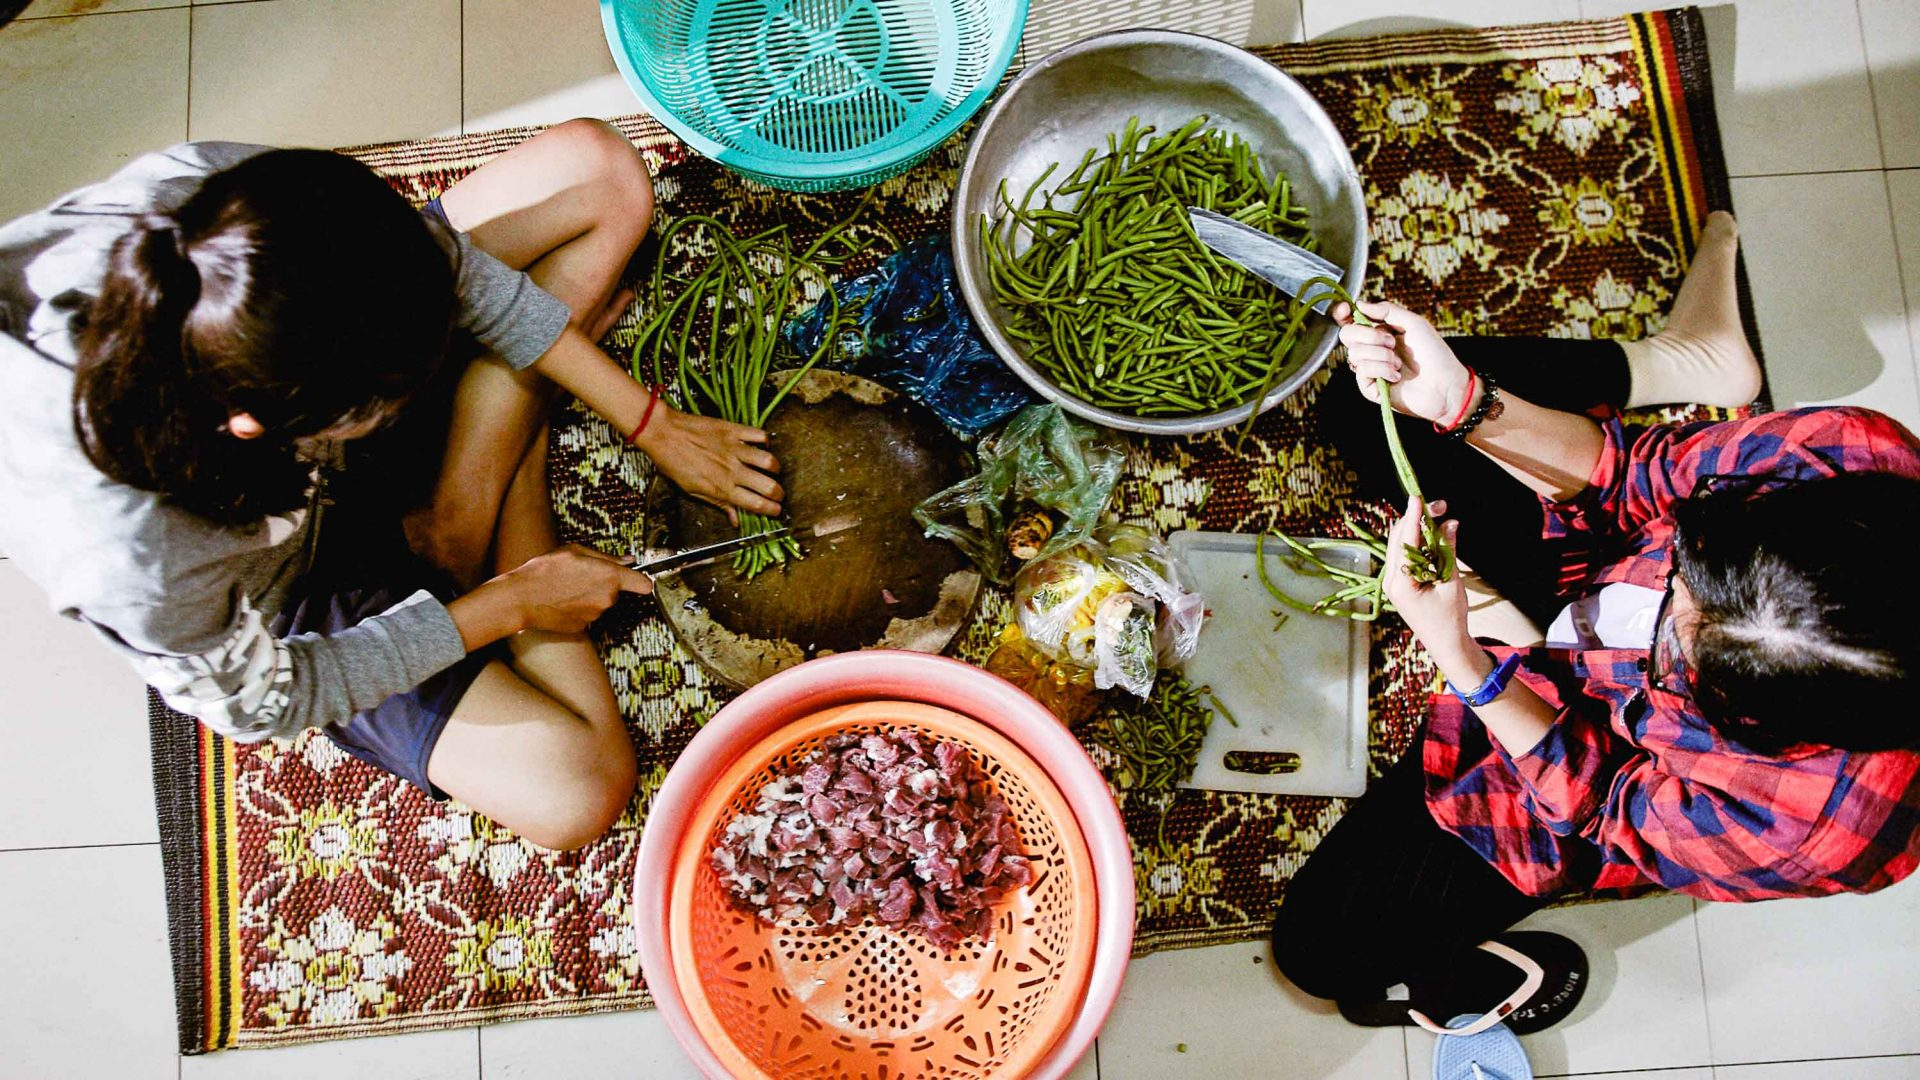 In a land of extraordinary food, why are women and girls in Southeast Asia going hungry?